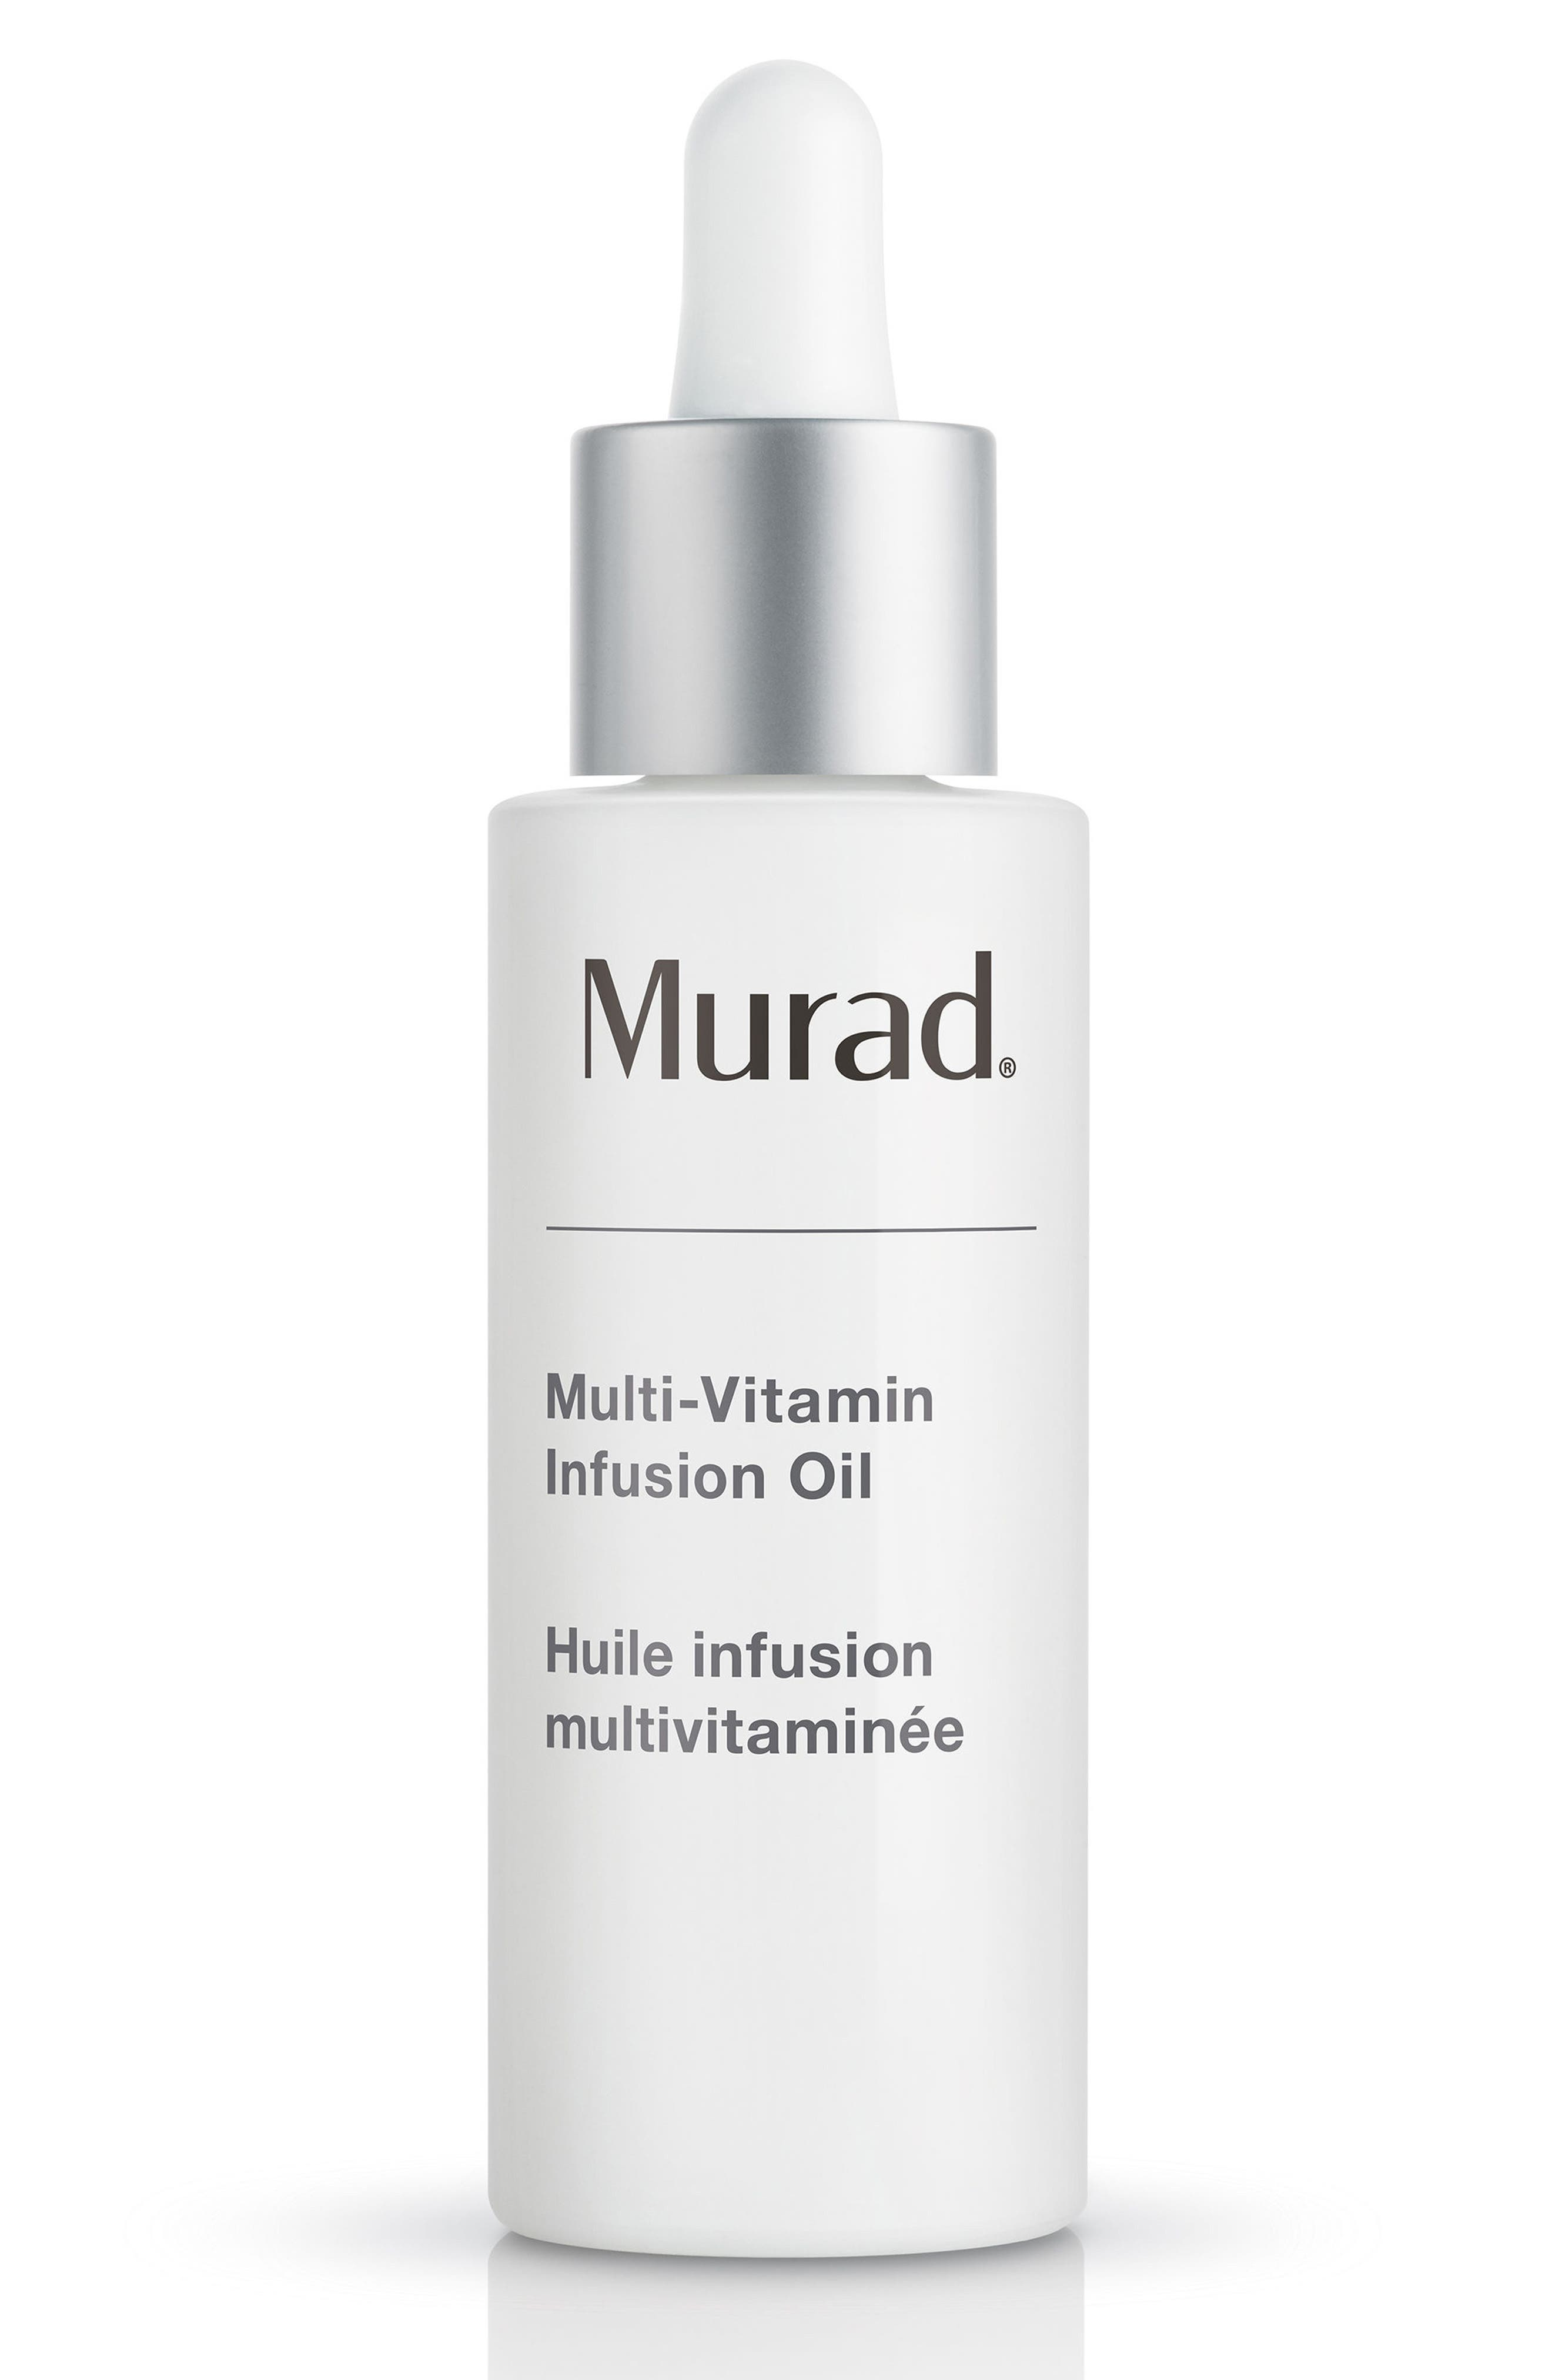 Murad Multi-Vitamin Infusion Oil,                         Main,                         color, No Color